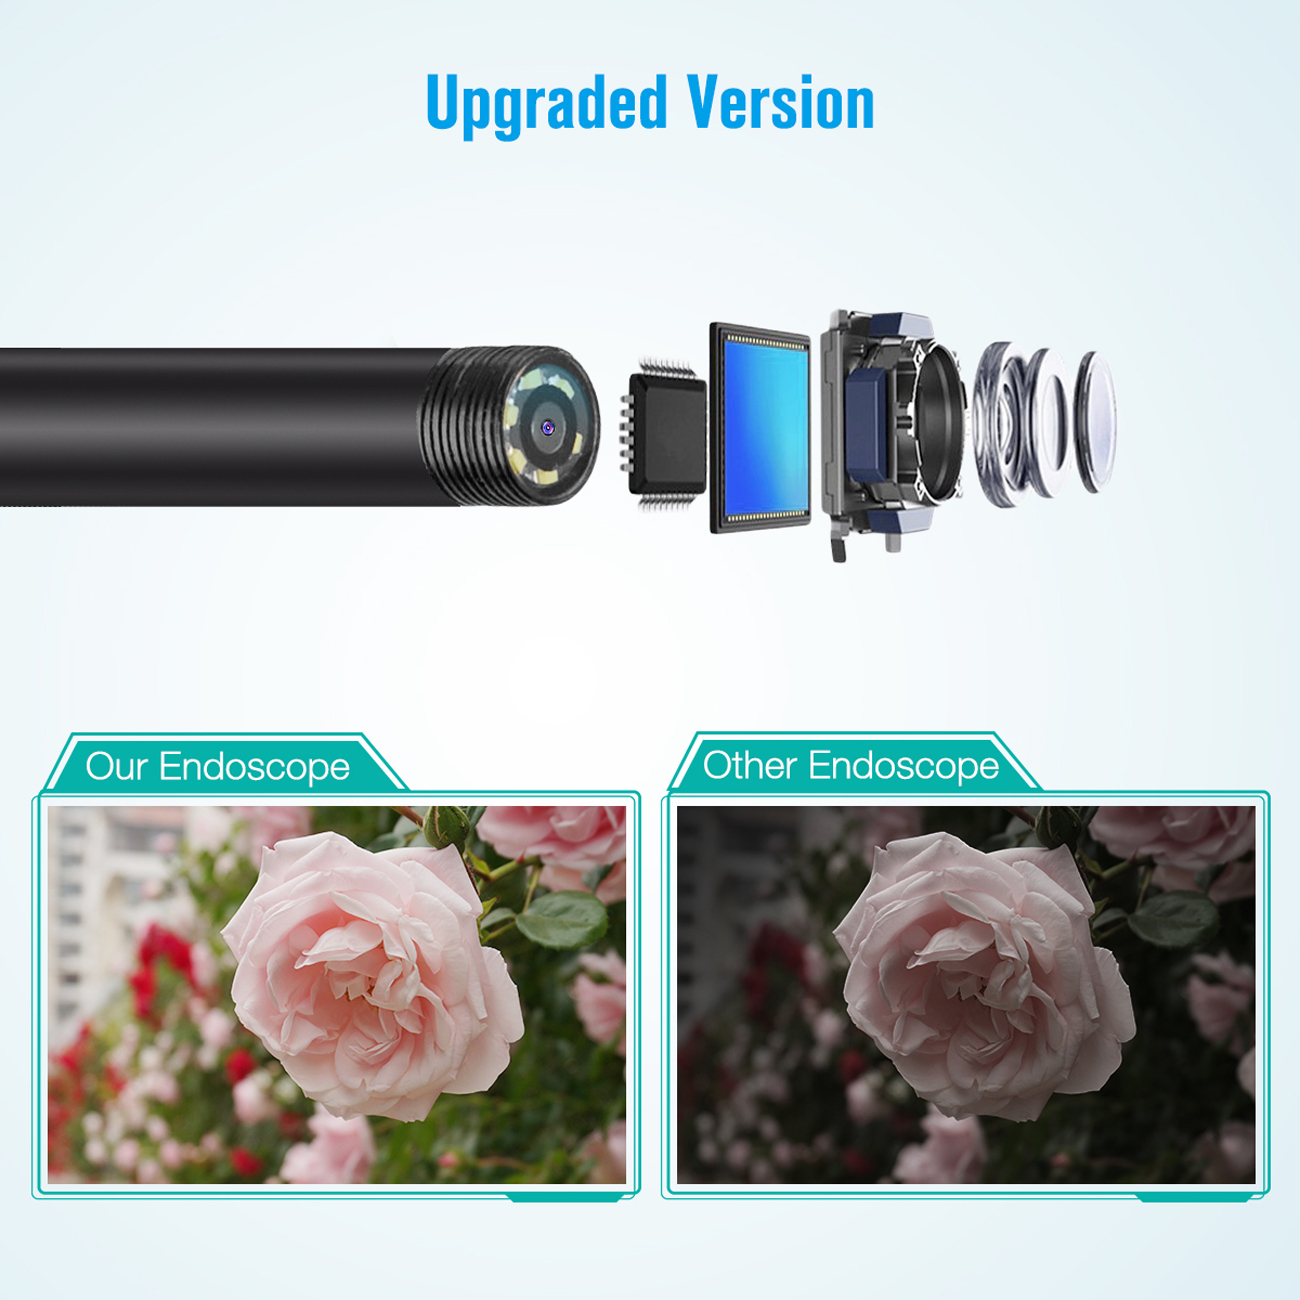 FirstPower Waterproof USB Endoscope Camera